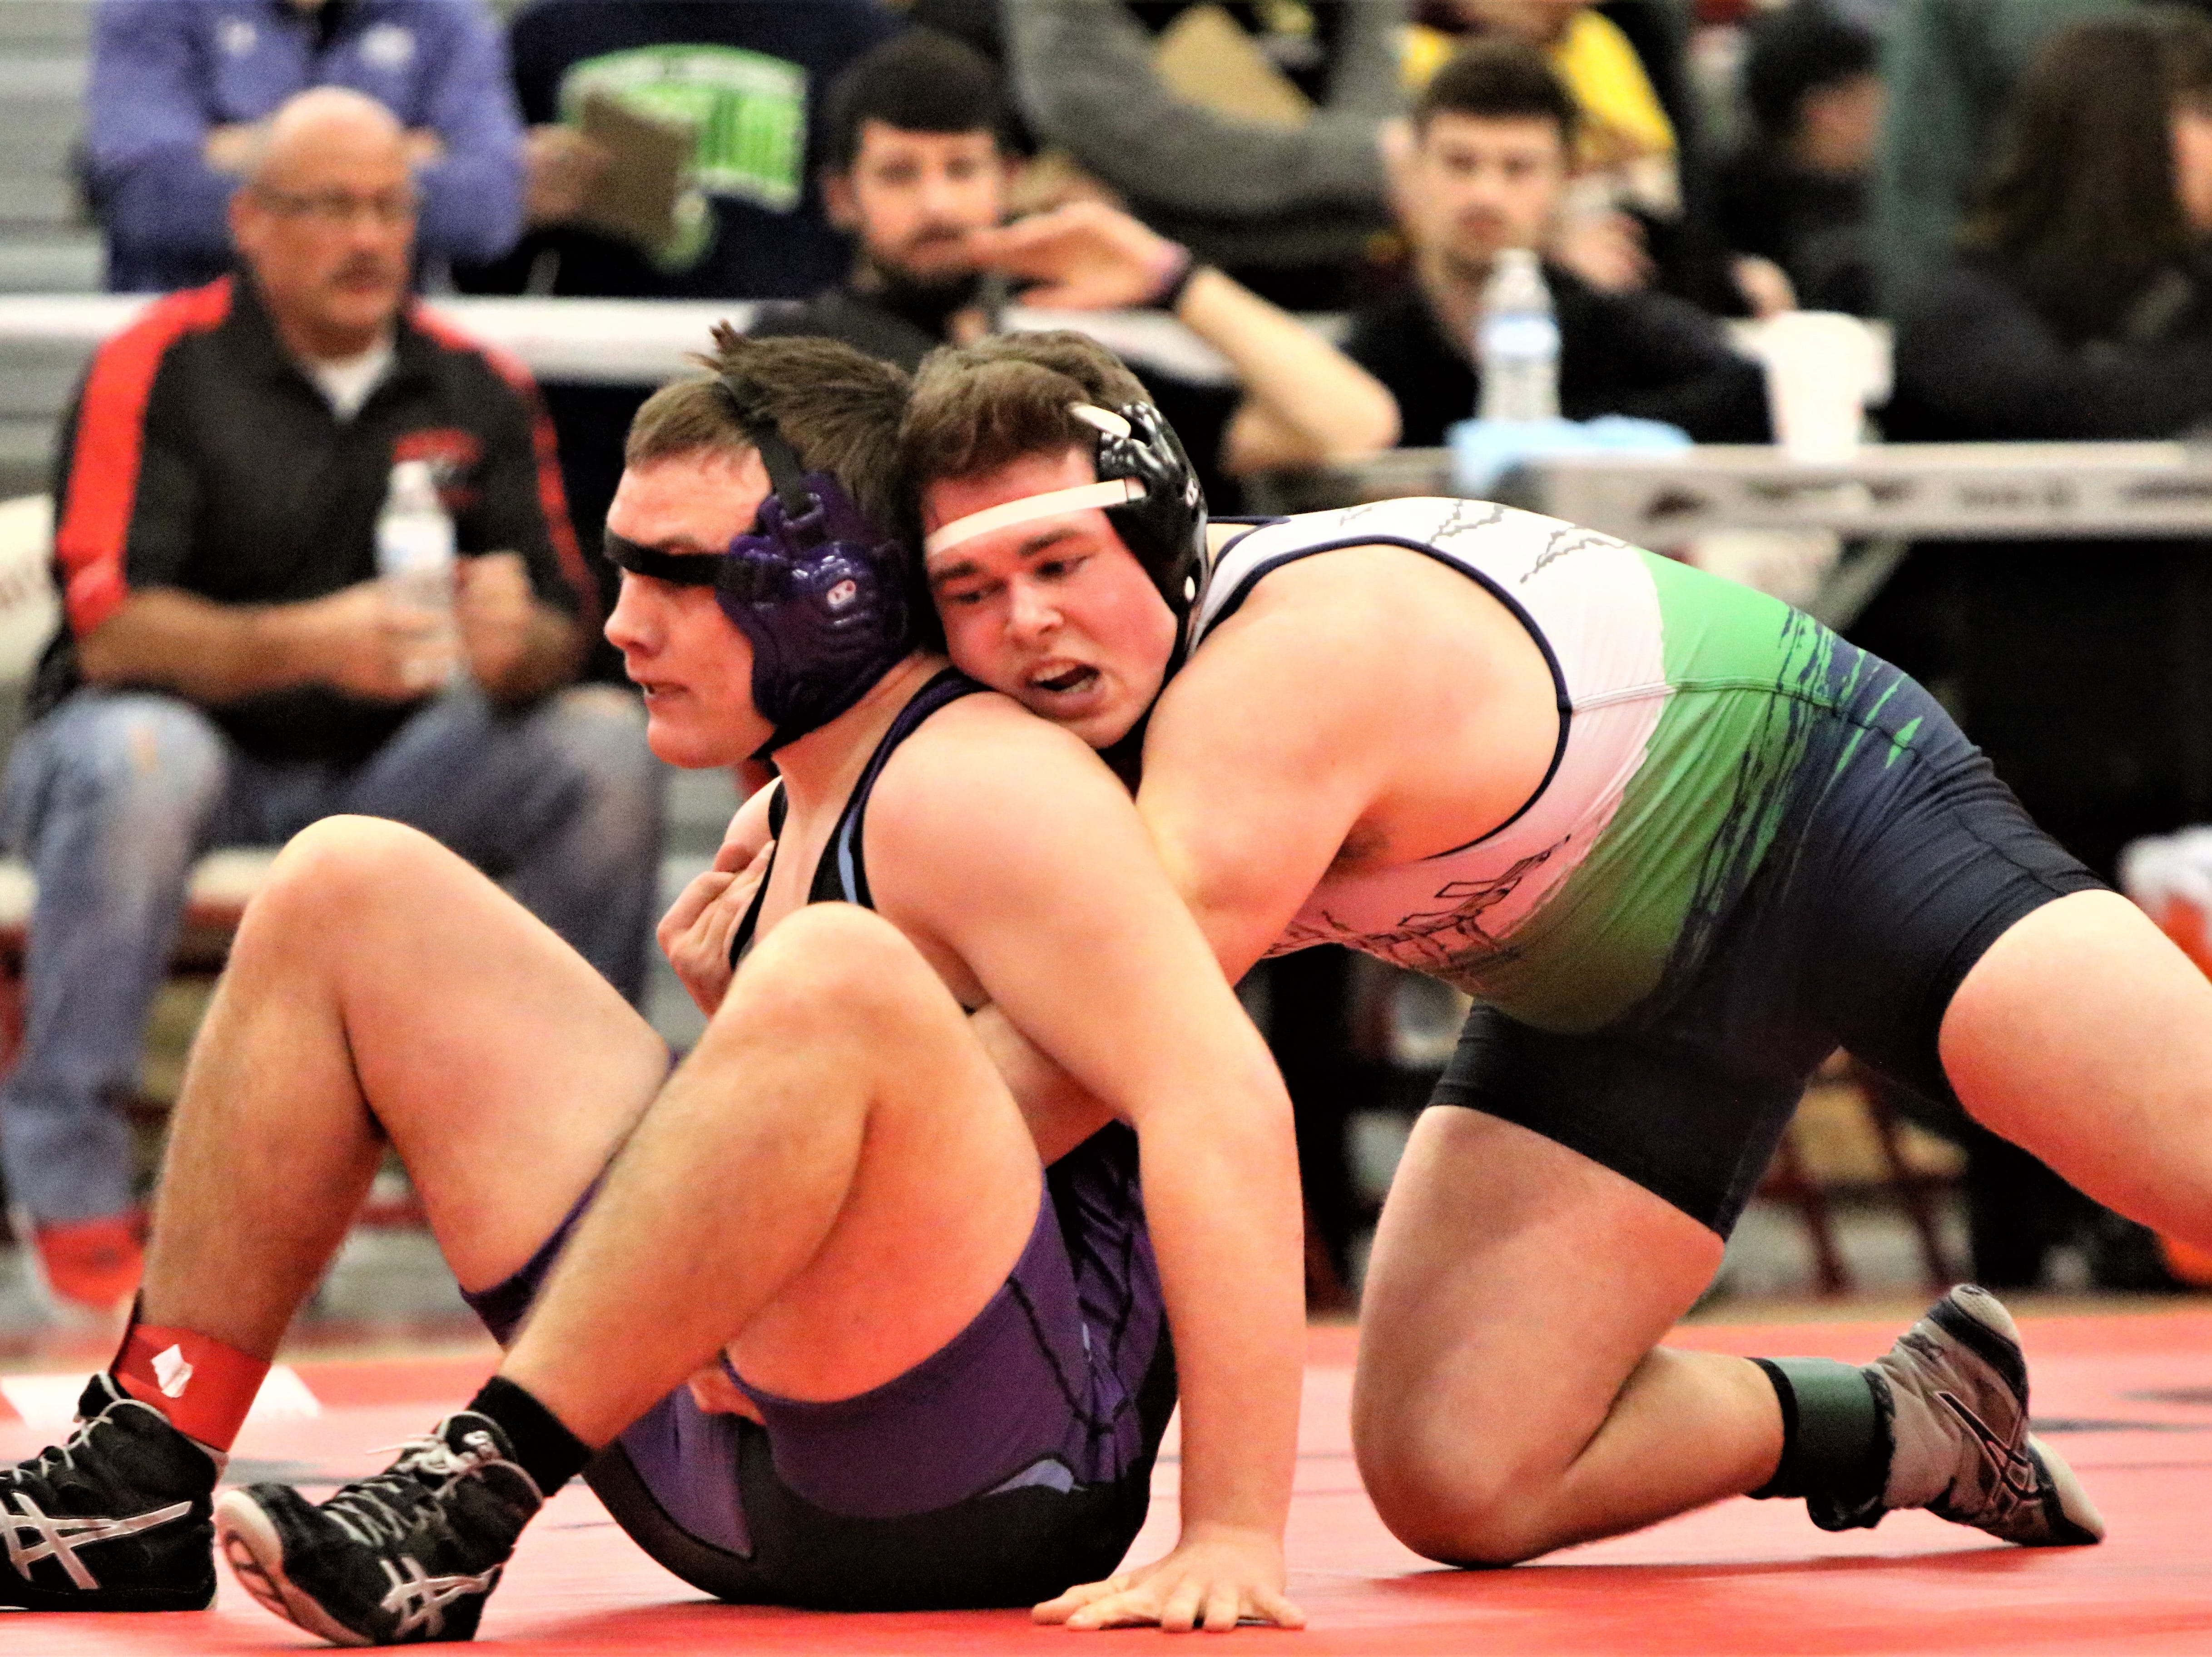 Whitnall/Greendale's Brandt Hausch (right) grabs a hold of Waukesha North's Josh Schultz during the WIAA sectional meet at Racine Horlick on Feb. 16, 2019.